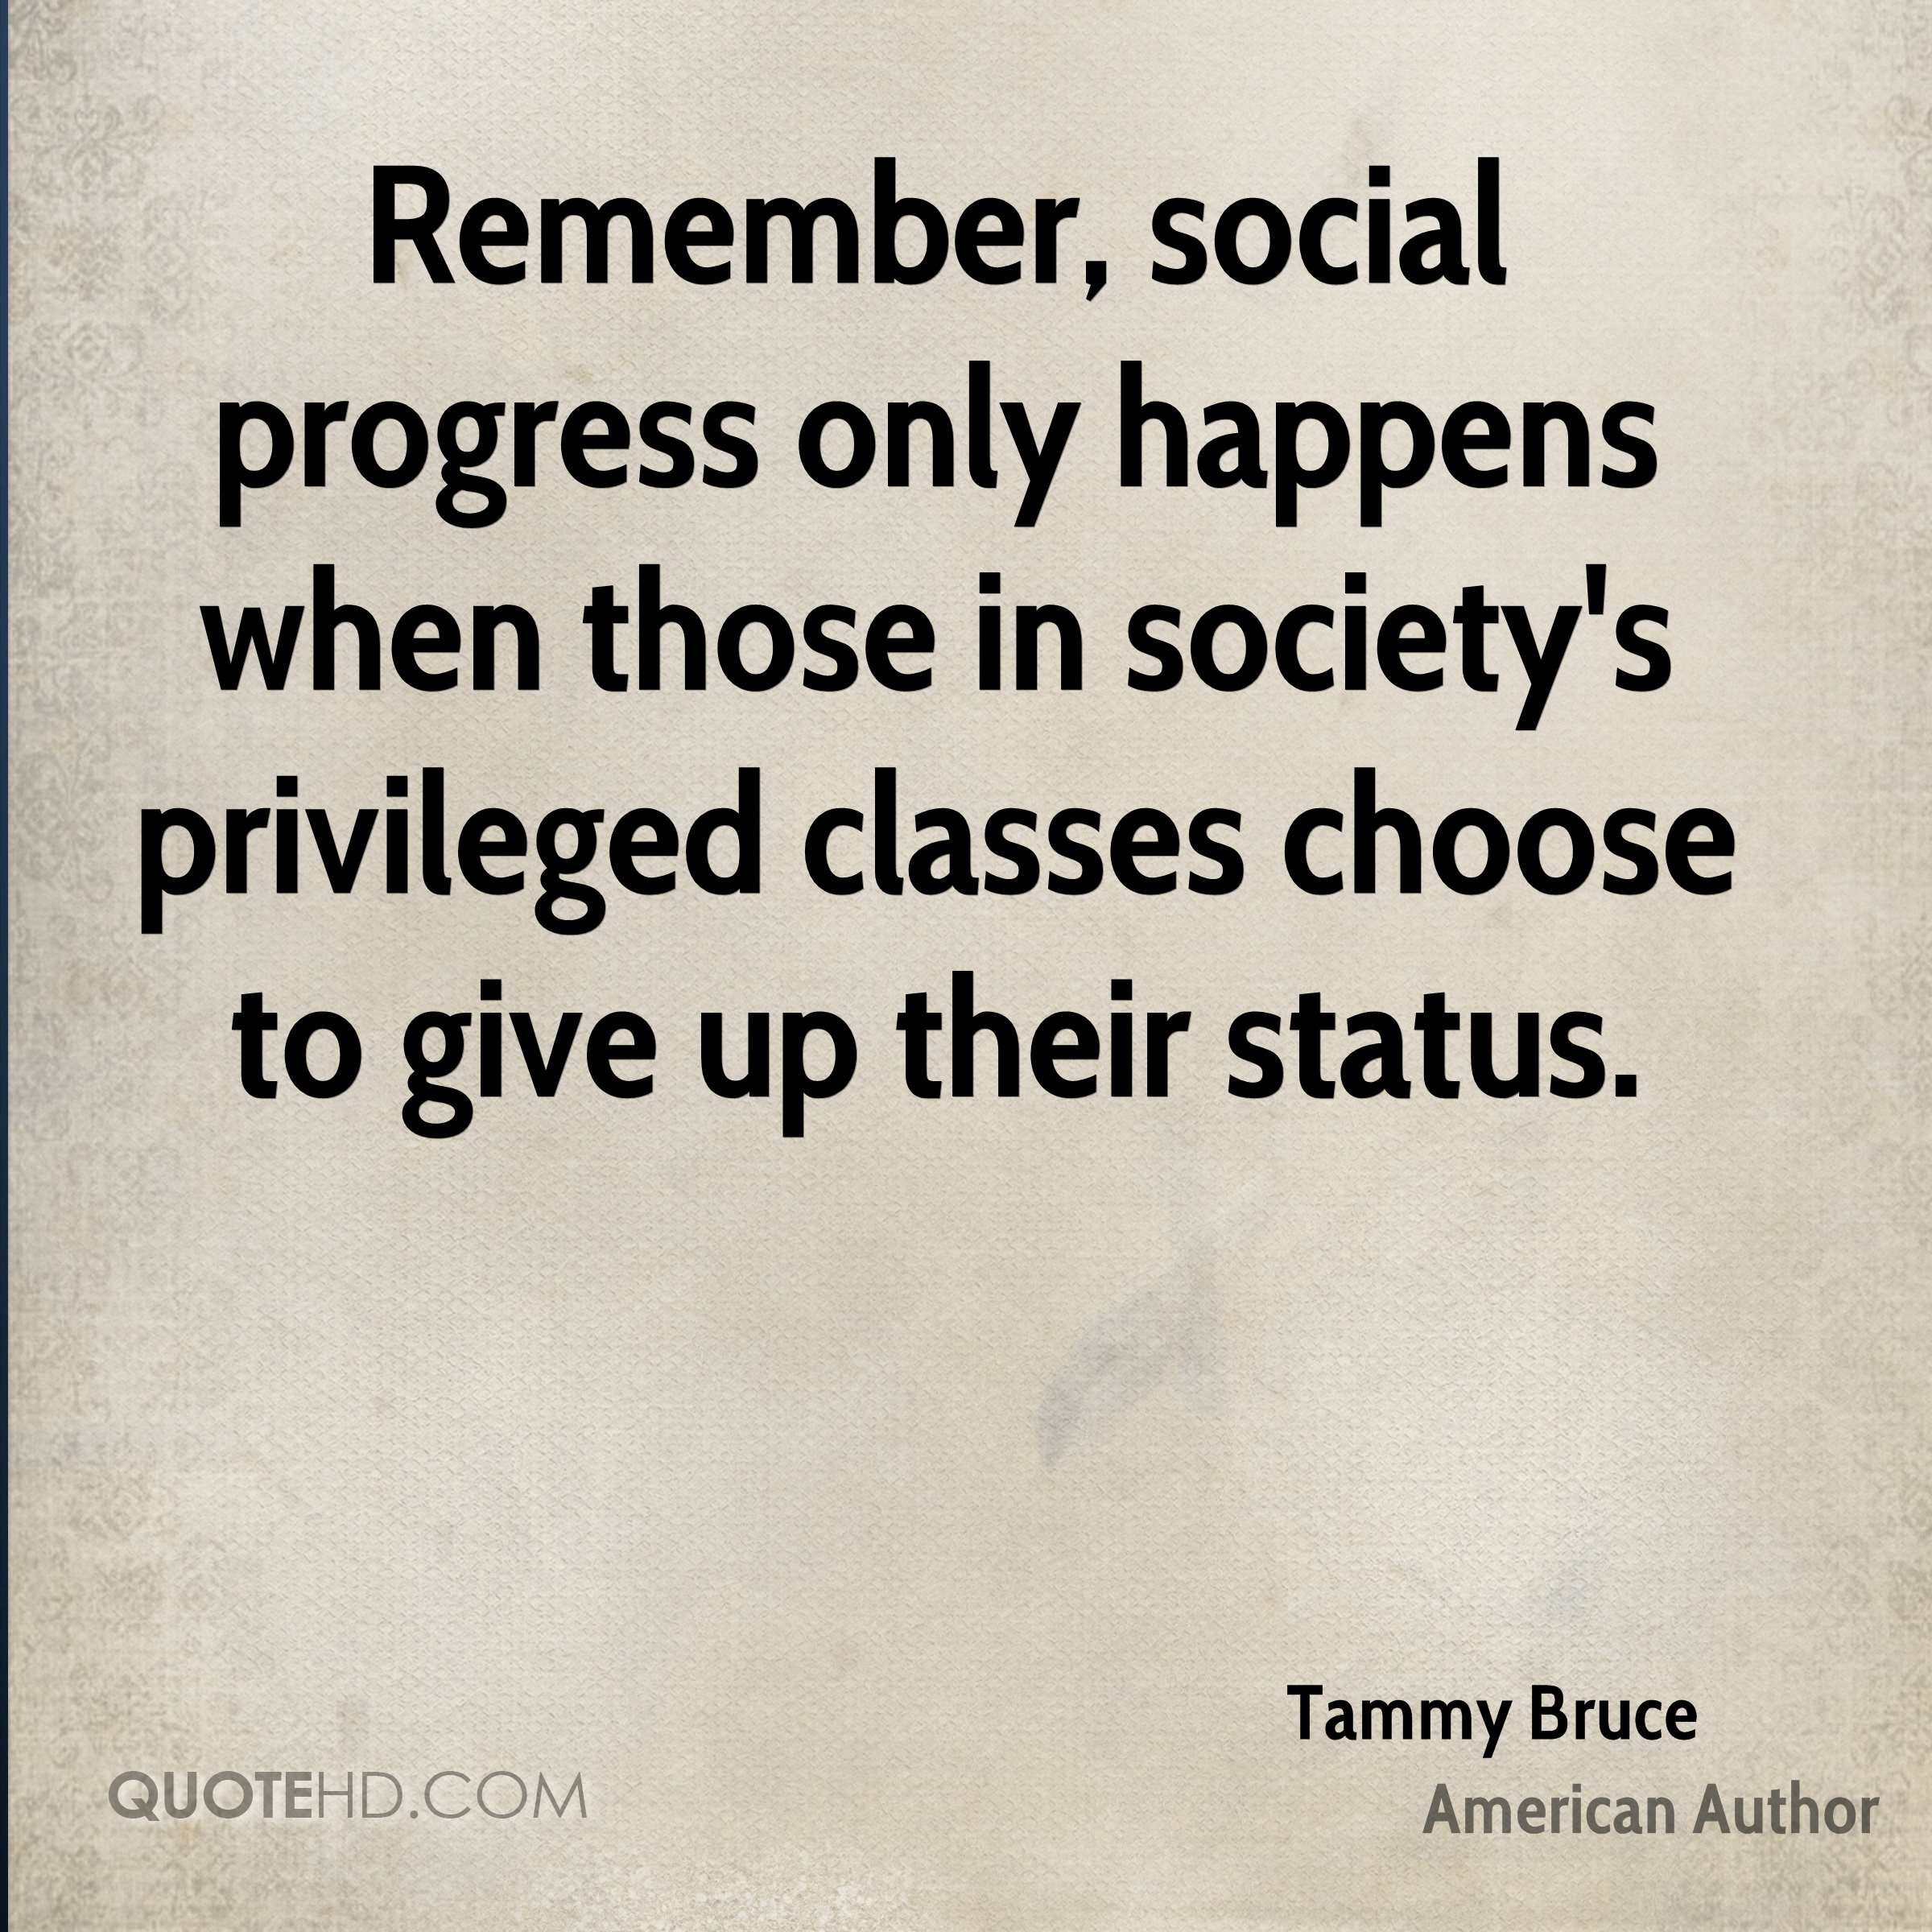 Remember, social progress only happens when those in society's privileged classes choose to give up their status.